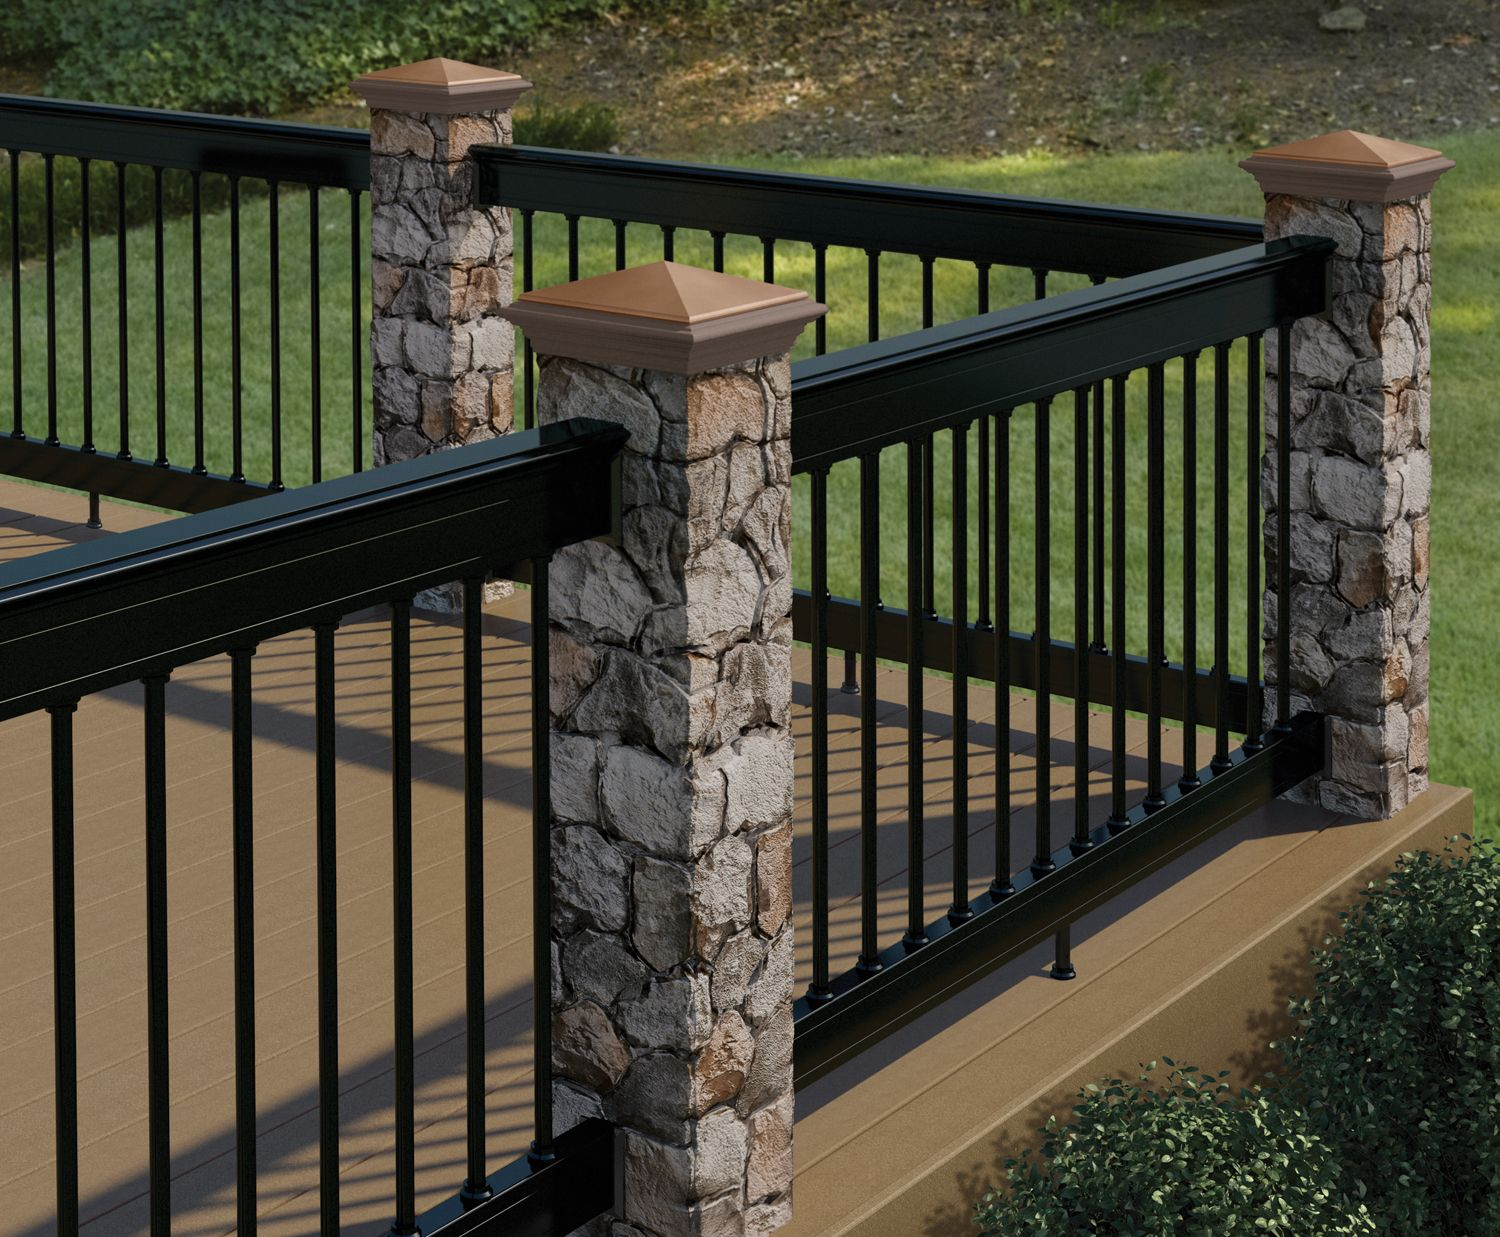 Redesigned Deckorators Postcover Has Look And Feel Of Real Masonry Perfect For Decks Fence